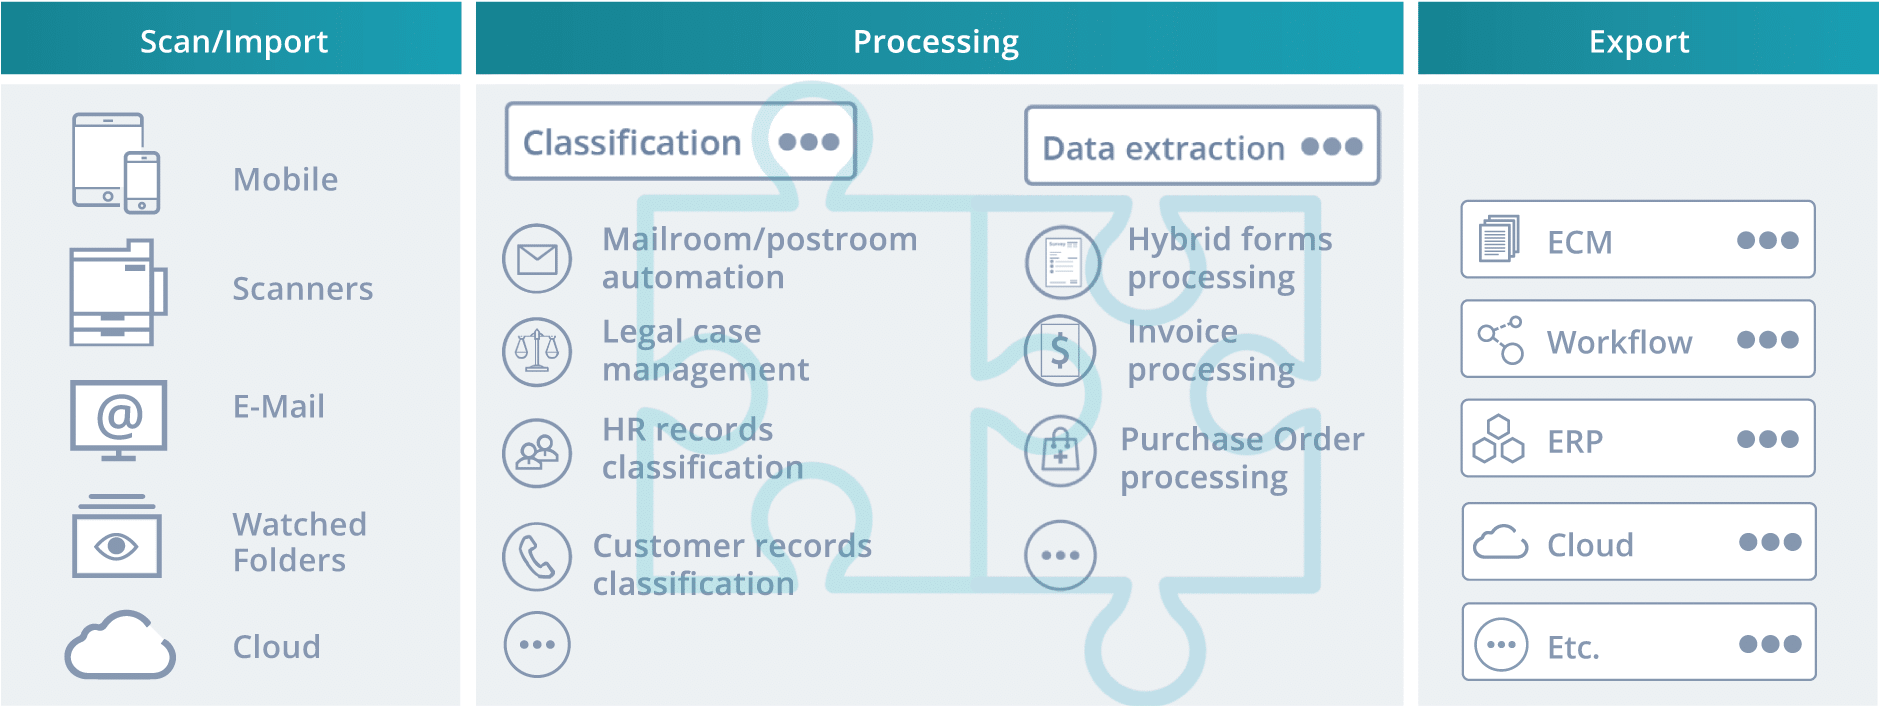 How does the IRISXtract for Documents software work? You can import documents via scan clients, electronic files, e-mail or cloud. The the software classifies the documents and/or extracts data it in a digital mailroom or business process solution (Mailroom/postroom automation, Legal Case management, HR records classification, Customer records classification, Invoice processing, hybrid forms processing, purchase order processing ..) You can then export the data and documents to your ECM, Workflow, ERP or Cloud system. IRISXtract helps you move towards a paperless office.